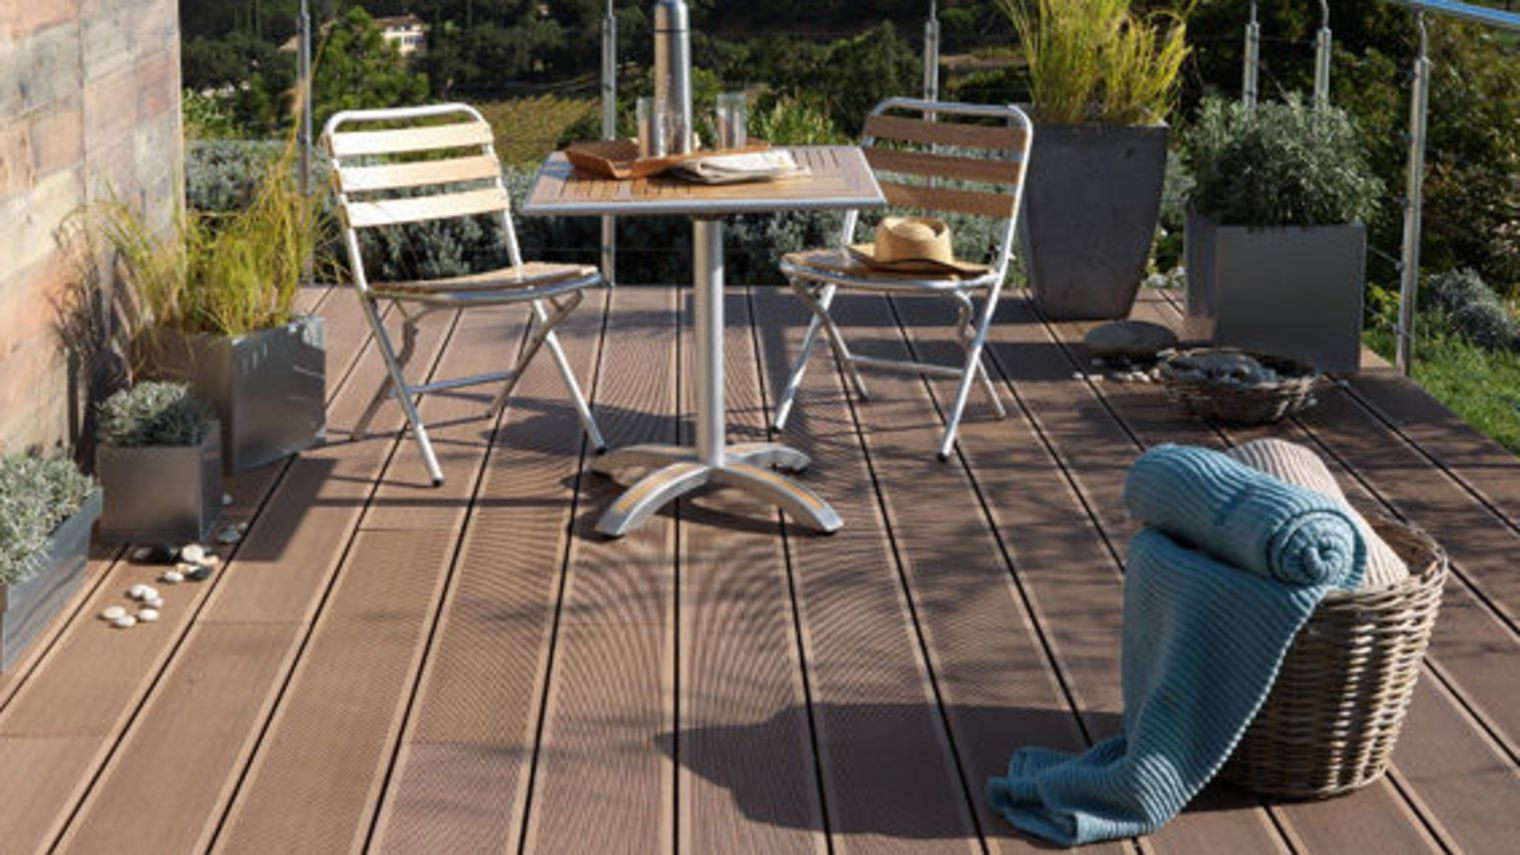 Terrasse Mixte Bois Et Carrelage Tanchit Terrasse Extrieure Awesome Beautiful Etanchit Terrasse